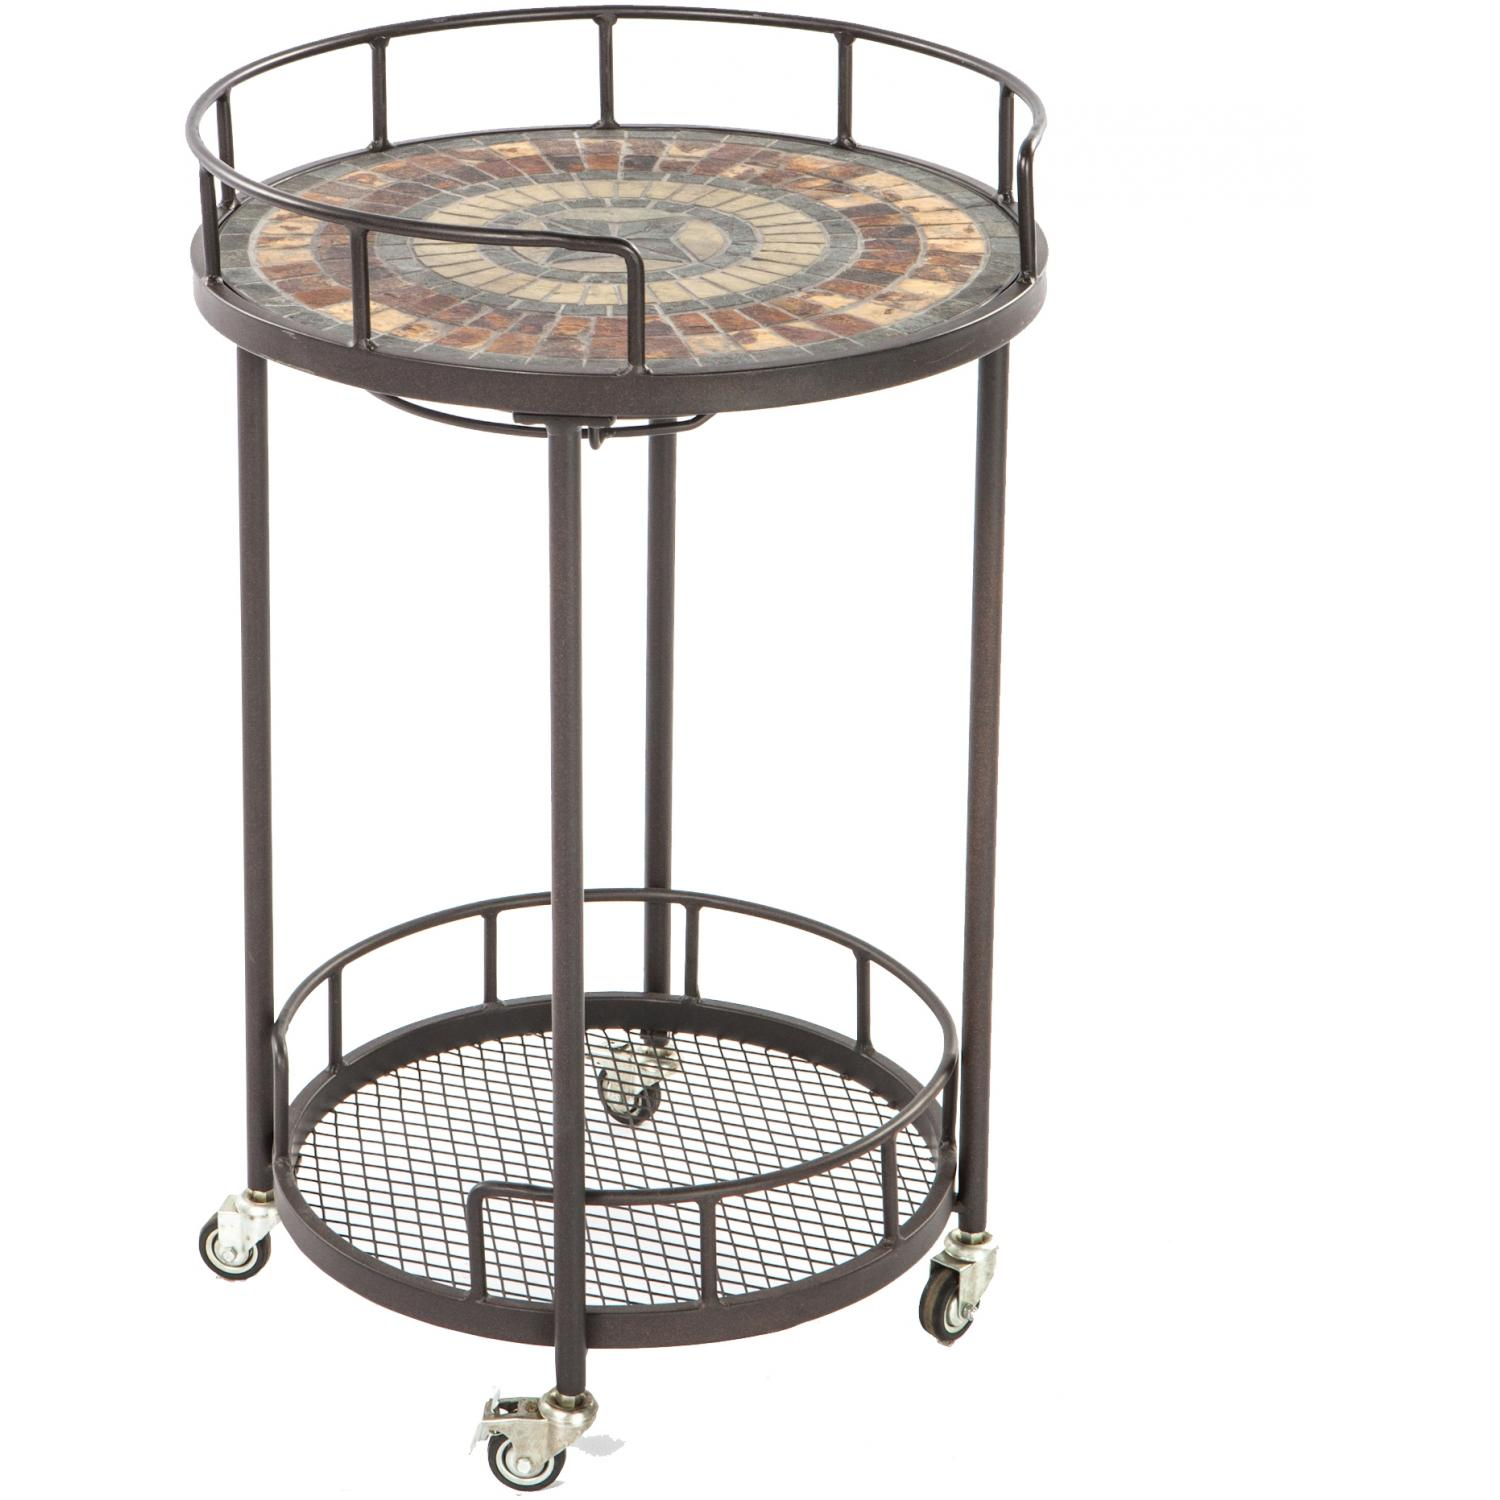 Alfresco Home Asti Mosaic Outdoor Serving Cart at Sears.com